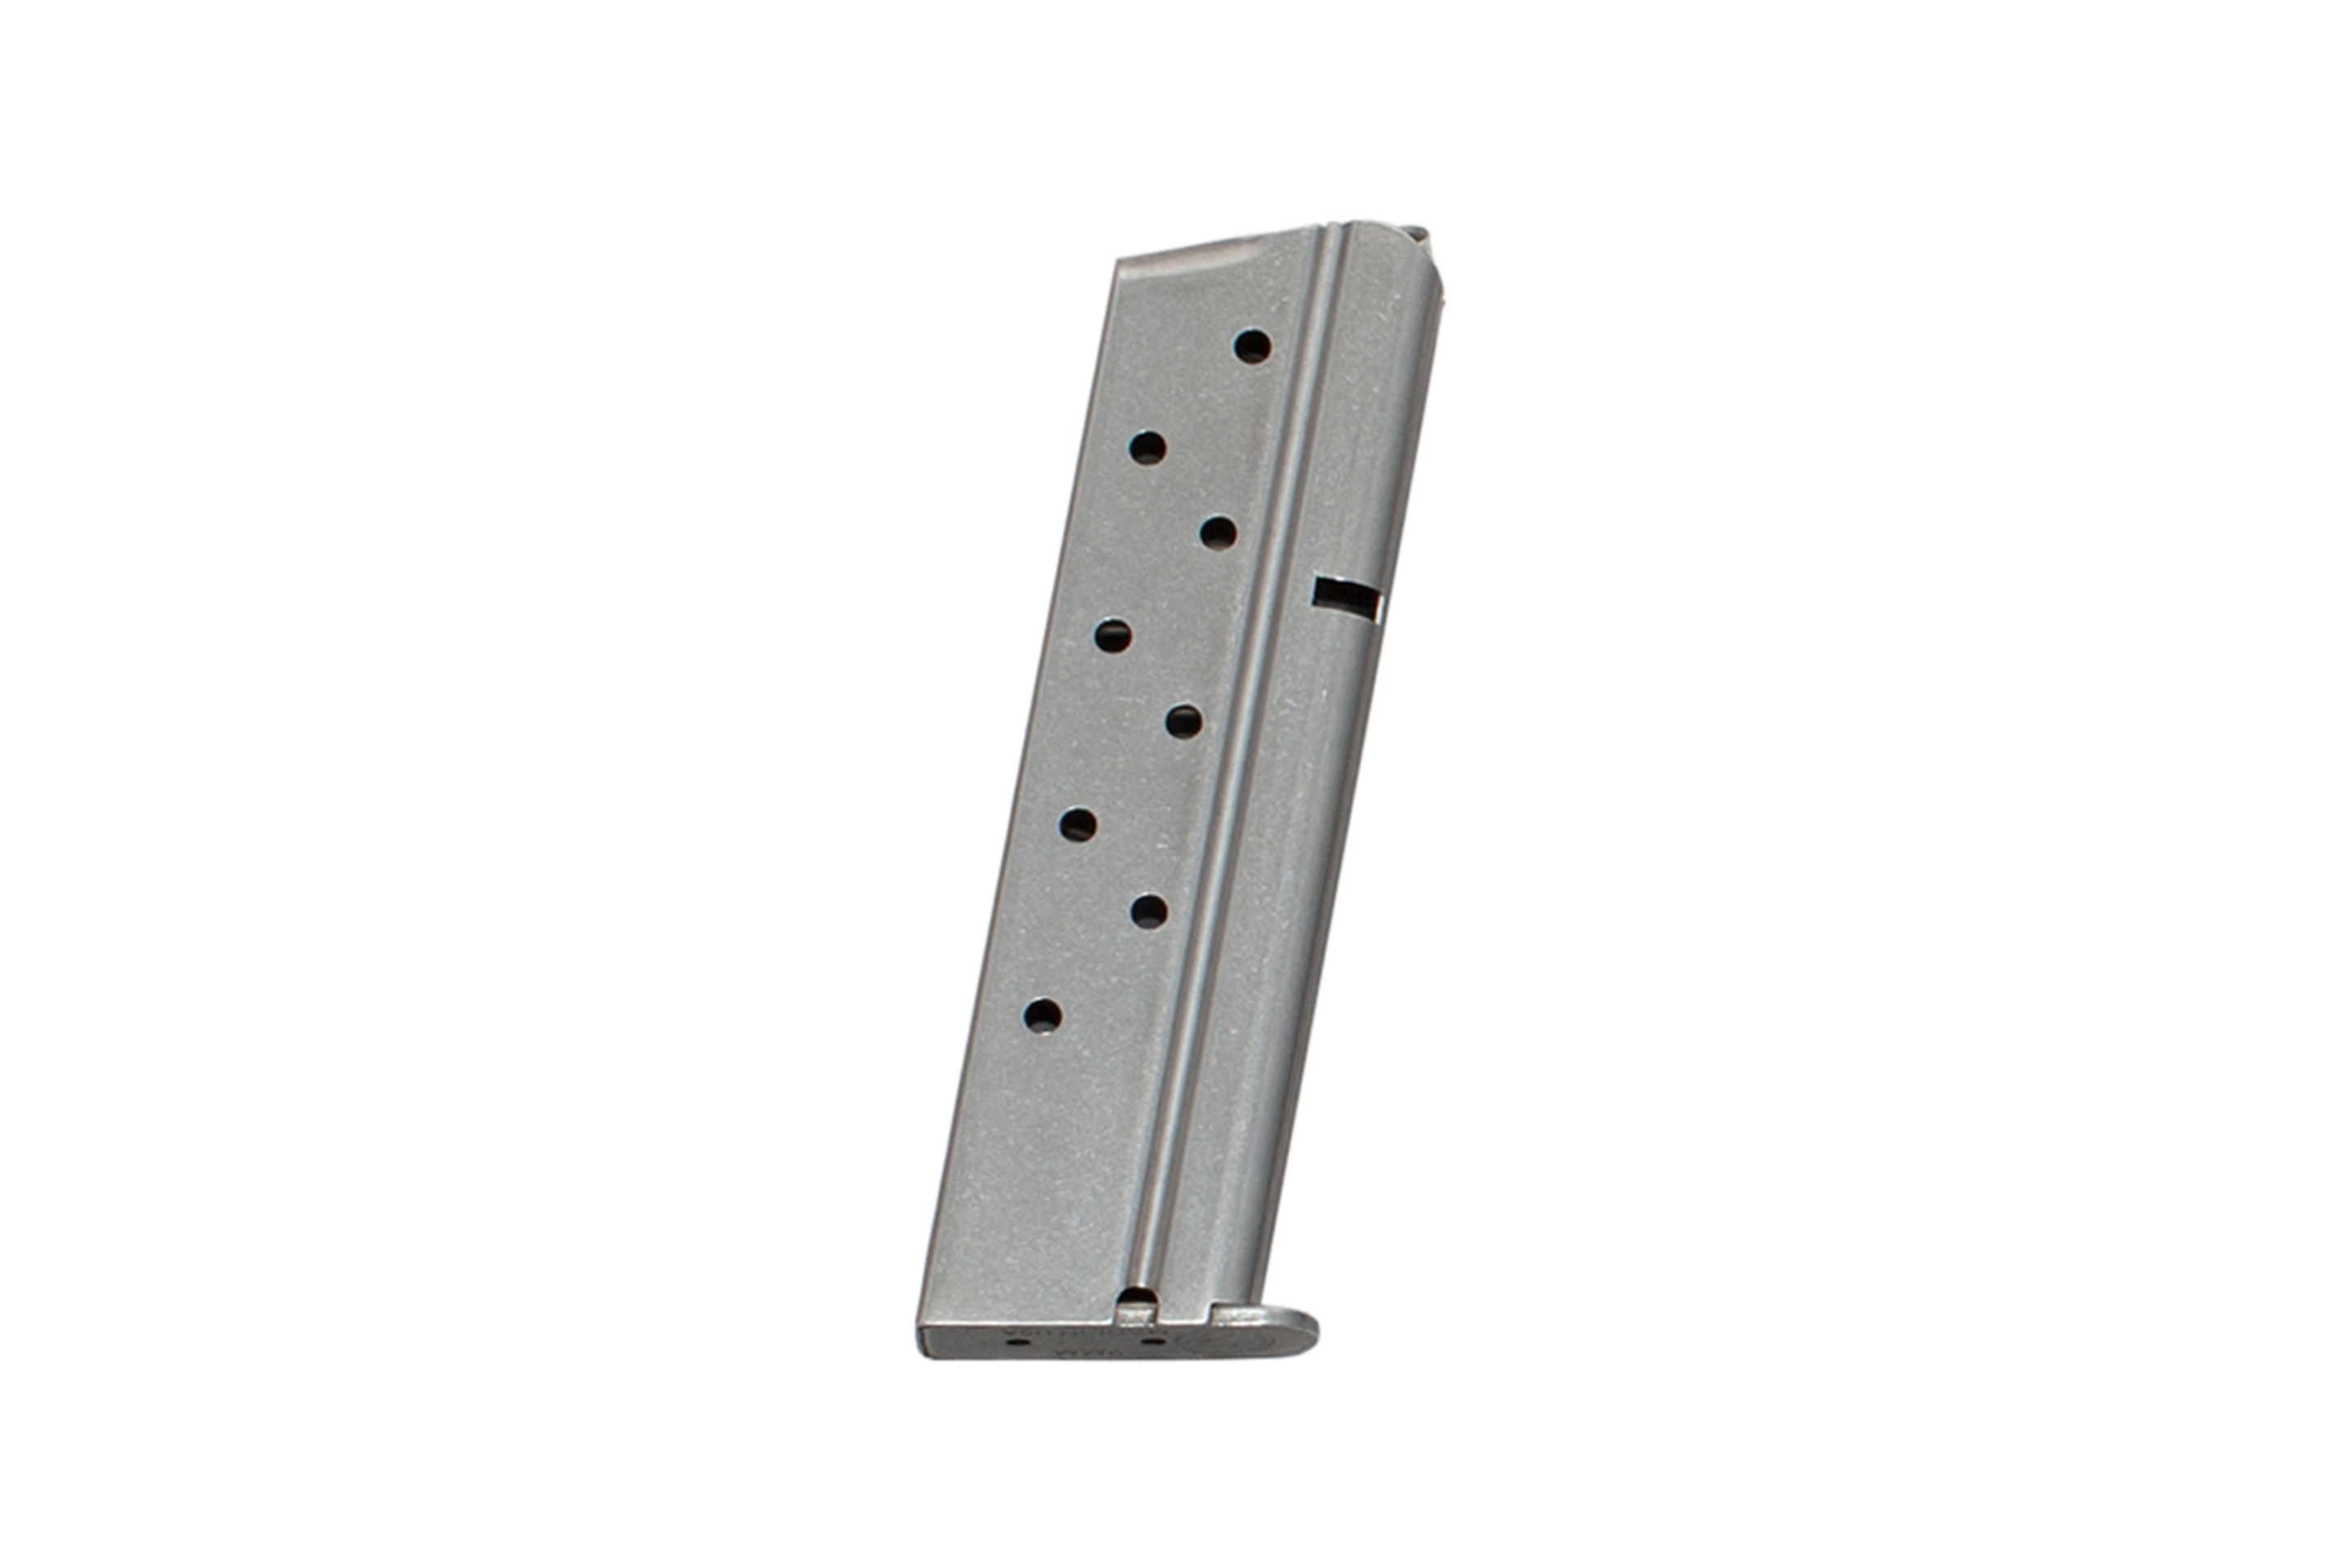 Metalform Stainless 9 Rd 9 mm Magazine / Welded Steel Base (Copy)